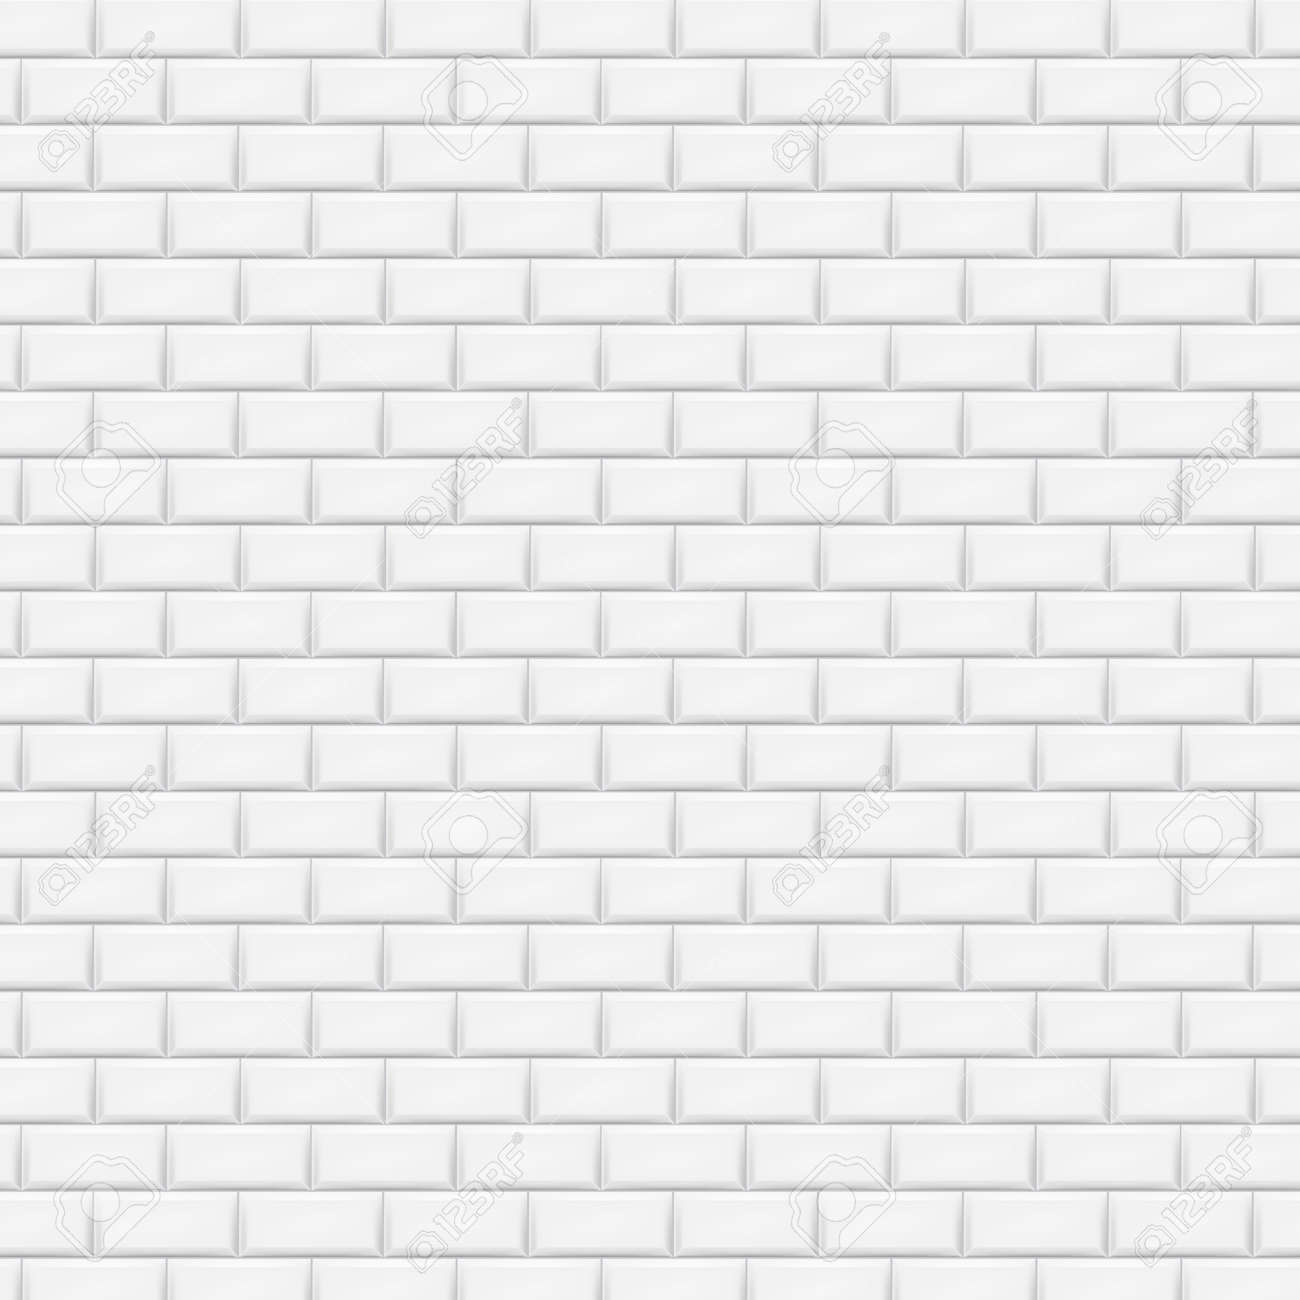 White brick wall in subway tile pattern vector illustration white brick wall in subway tile pattern vector illustration eps 10 stock vector dailygadgetfo Gallery